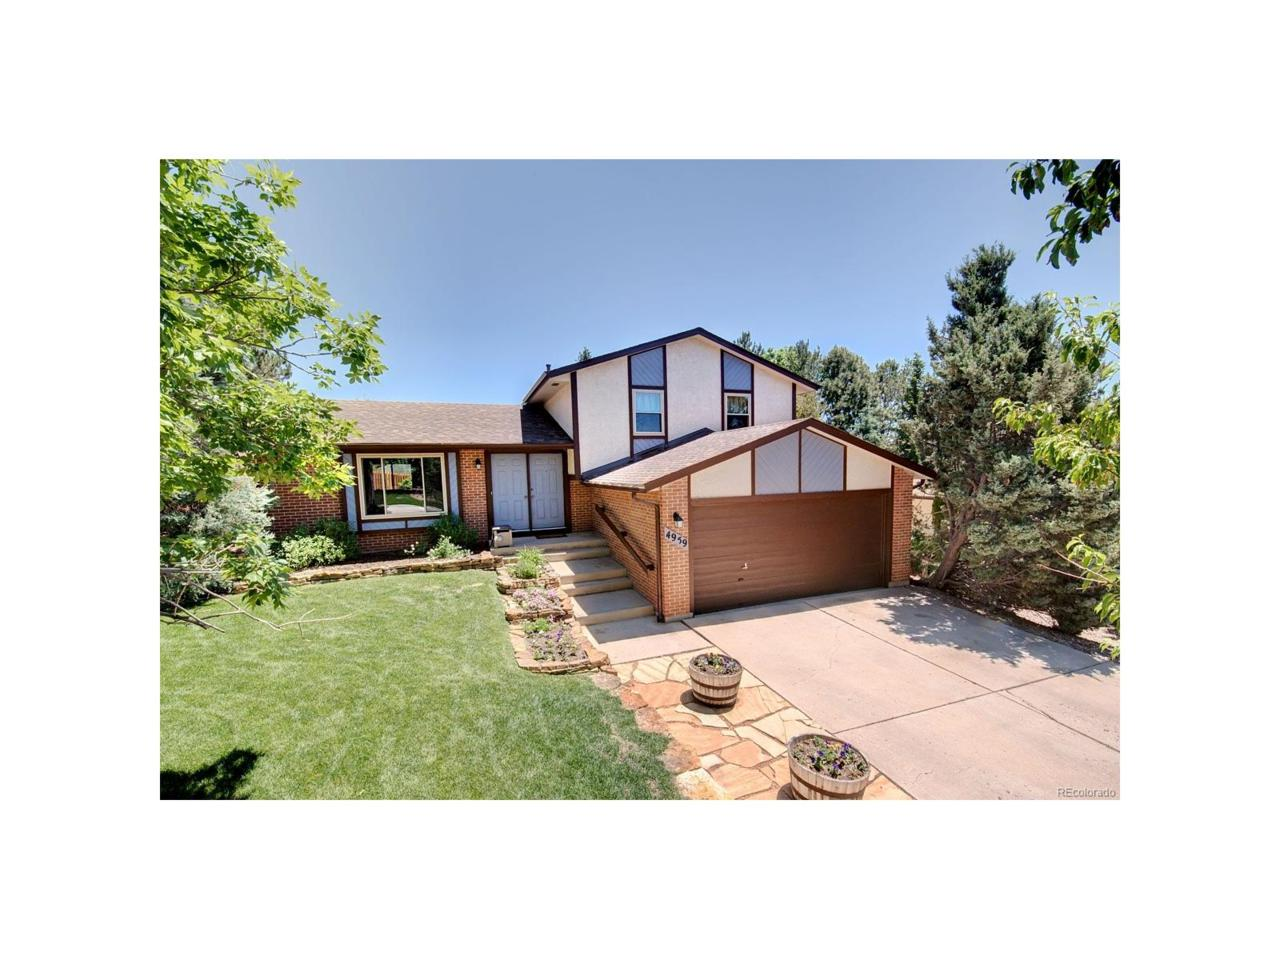 4959 Wood Brook Court, Colorado Springs, CO 80917 (MLS #5106615) :: 8z Real Estate